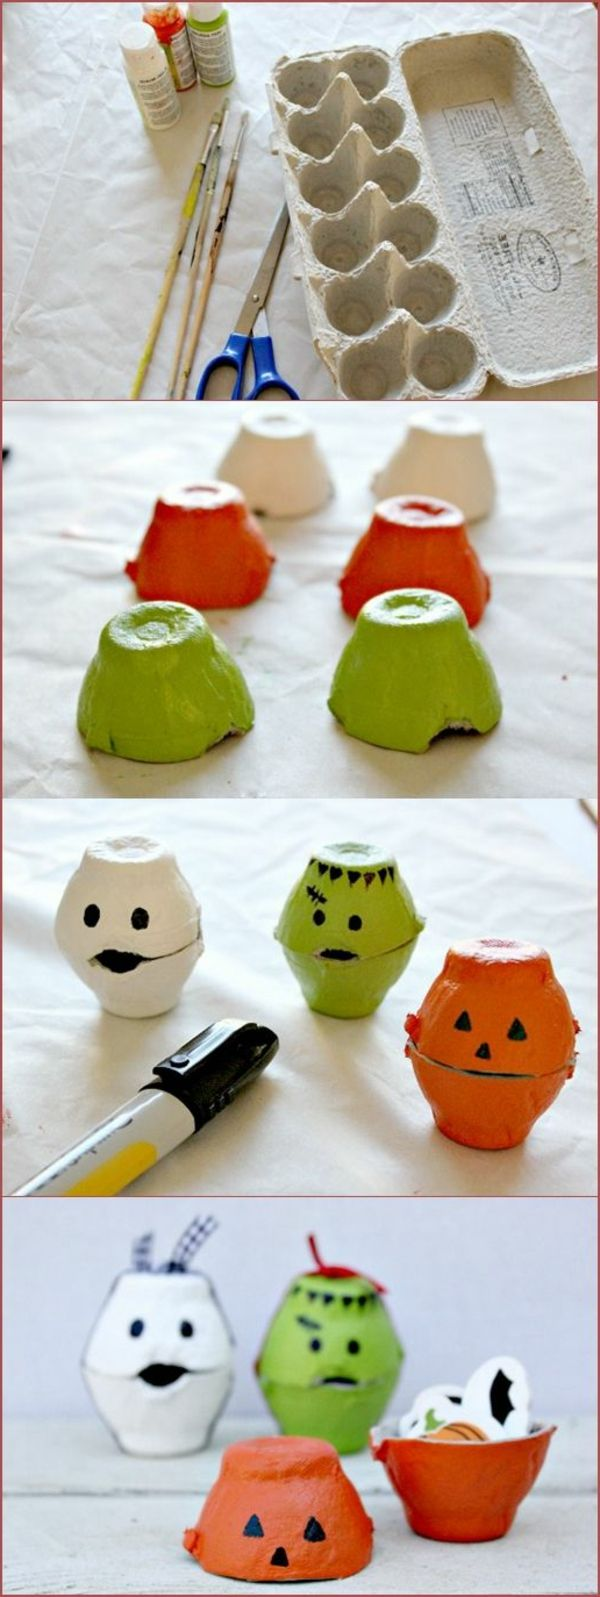 30 cool craft ideas from egg boxes that amaze you